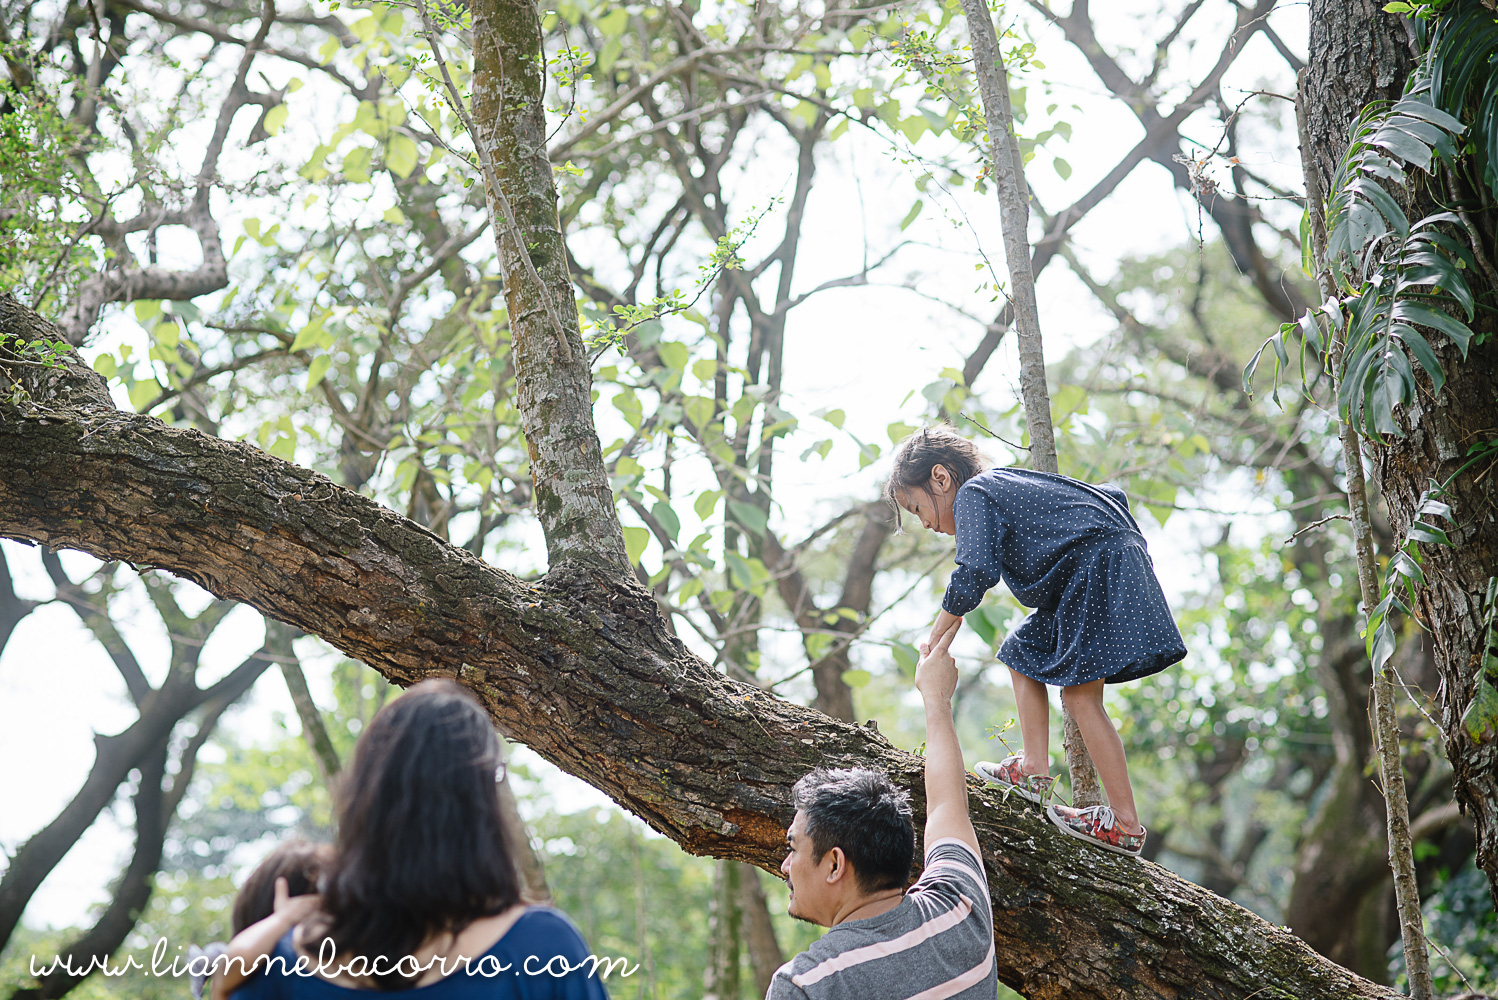 Photograpy by Lianne Bacorro - A Day in the Life Family Session - Roldan Family - edited-170